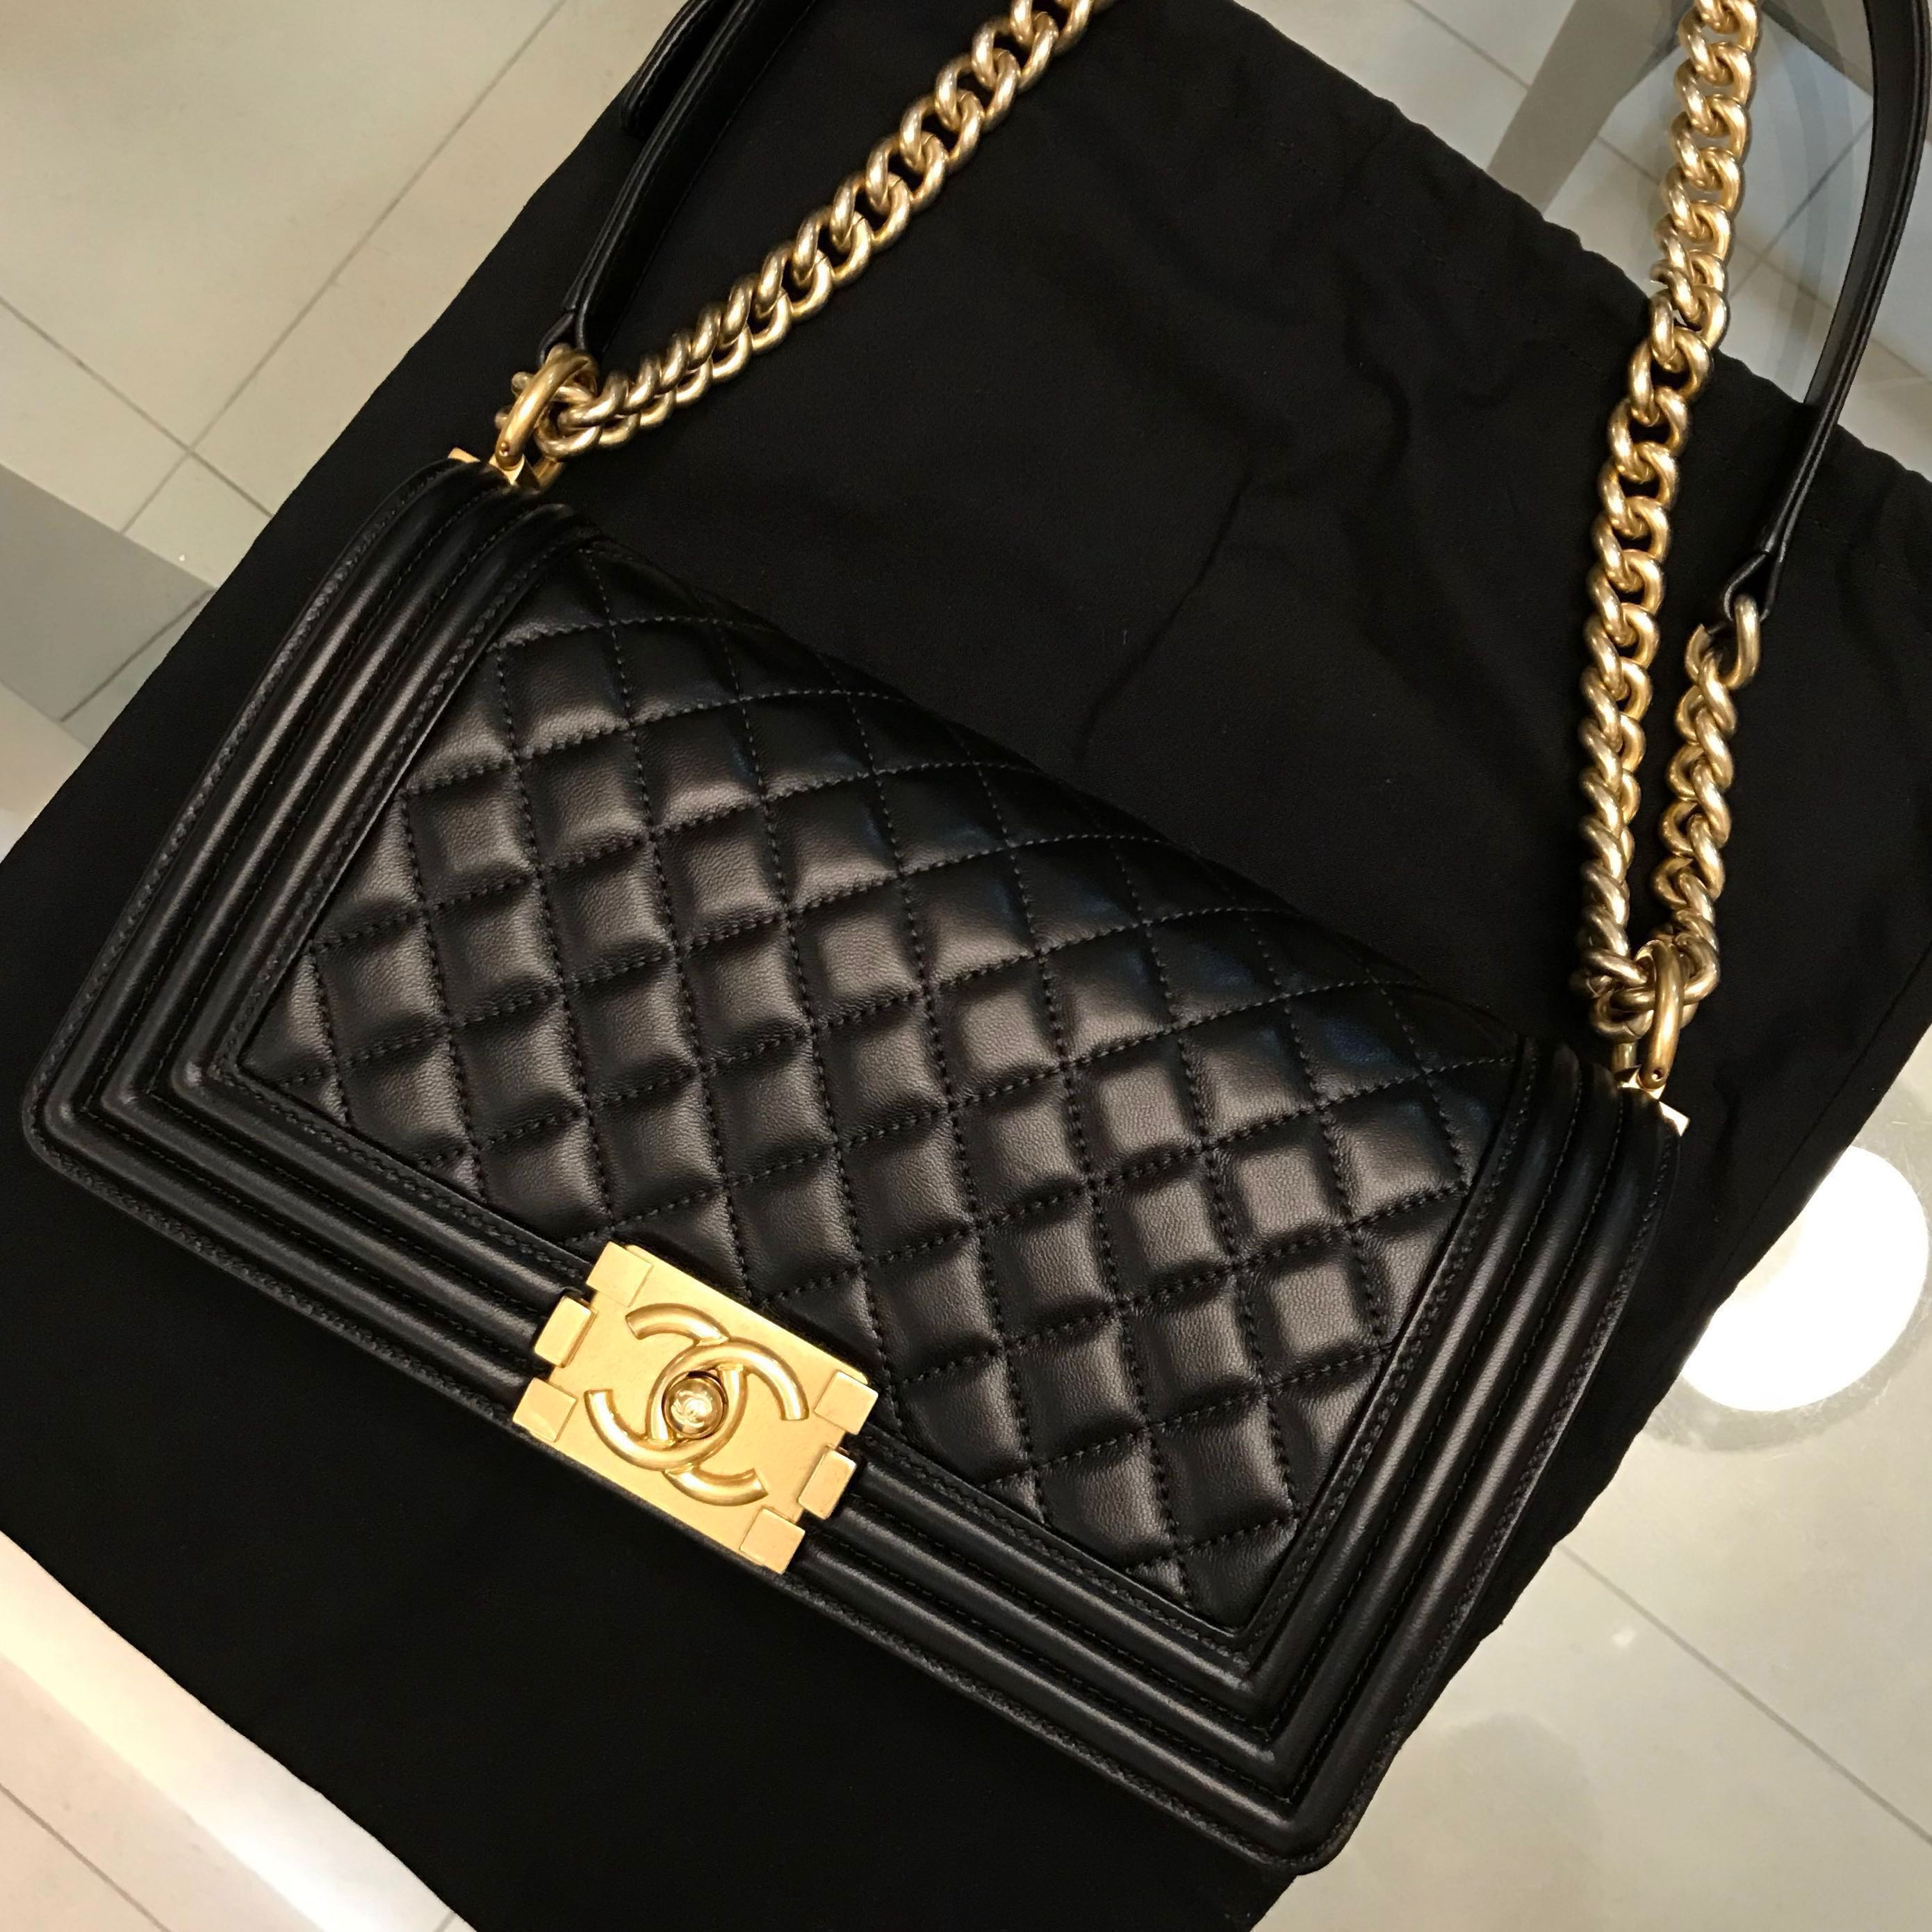 f5a3de65d0aa Authentic Chanel Boy Lambskin in Black Gold Hardware (Old Medium), Women's  Fashion, Bags & Wallets, Handbags on Carousell